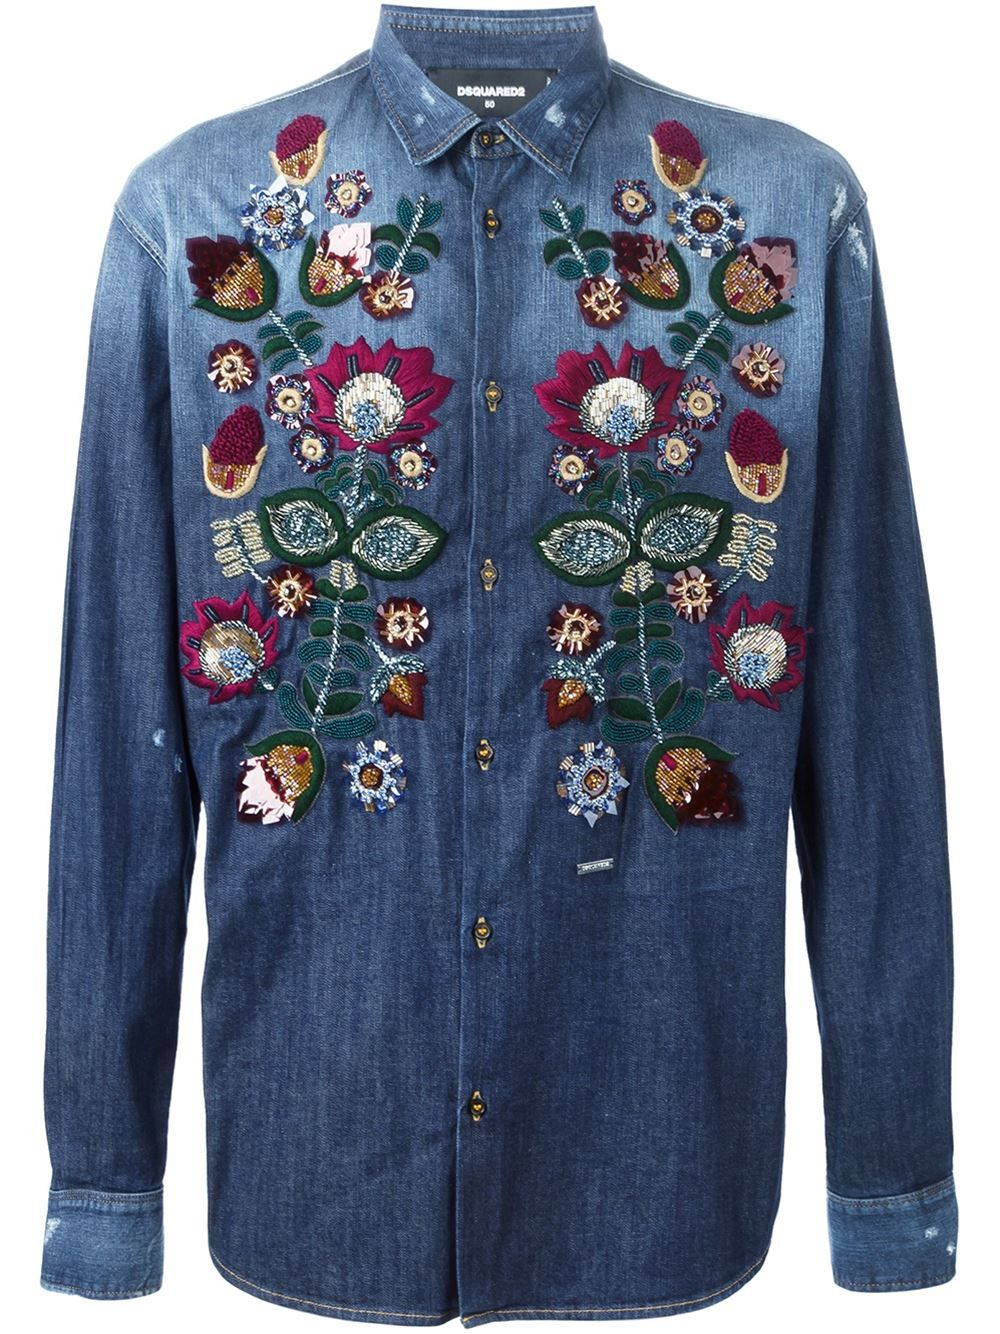 Flowered embroidered denim shirt dsquared crocheted flowers buy dsquared mens blue flower embroidered denim shirt starting at similar products also available ccuart Images